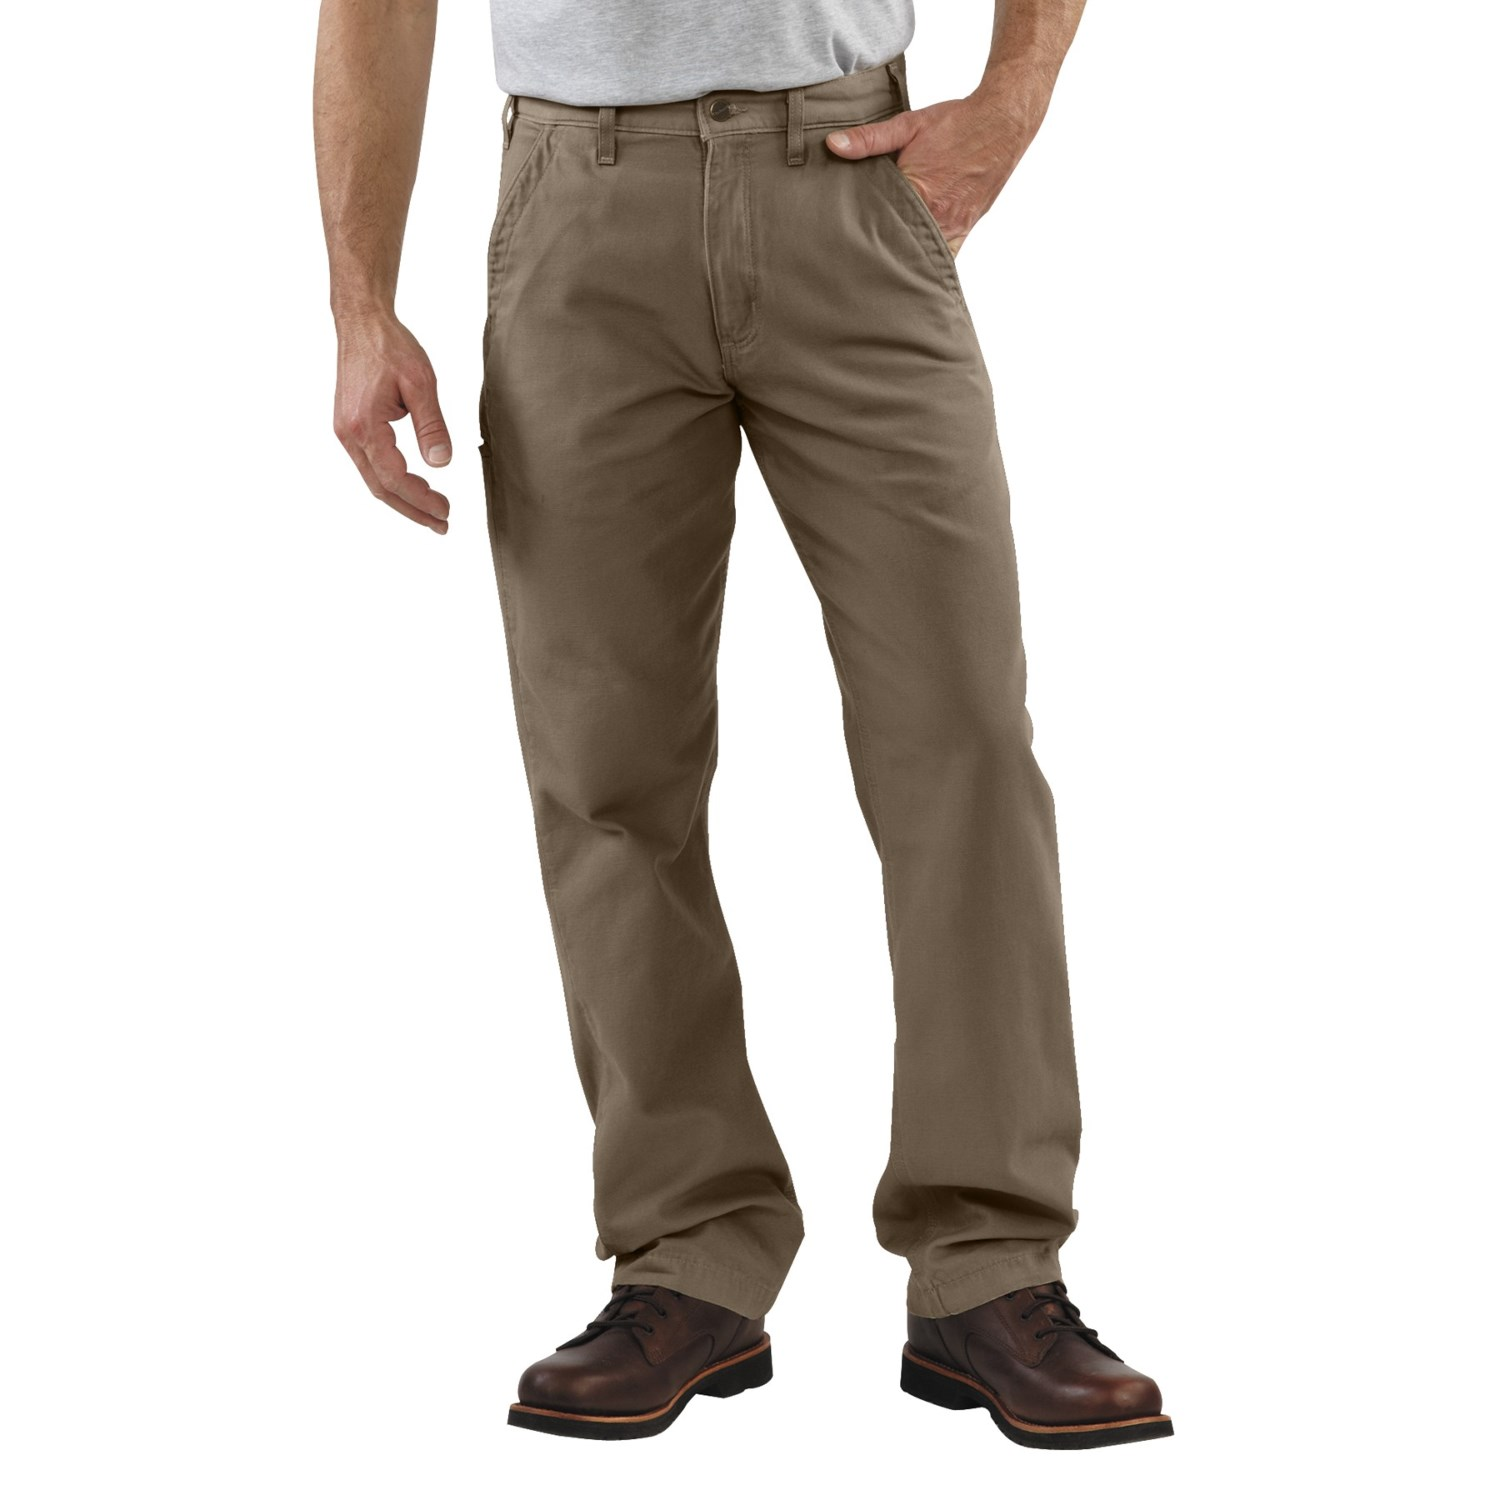 Dockers® original khakis are redefining men's clothing. New styles, new fits, great quality. See new khakis, menswear, and accessories at Dockers® United States.